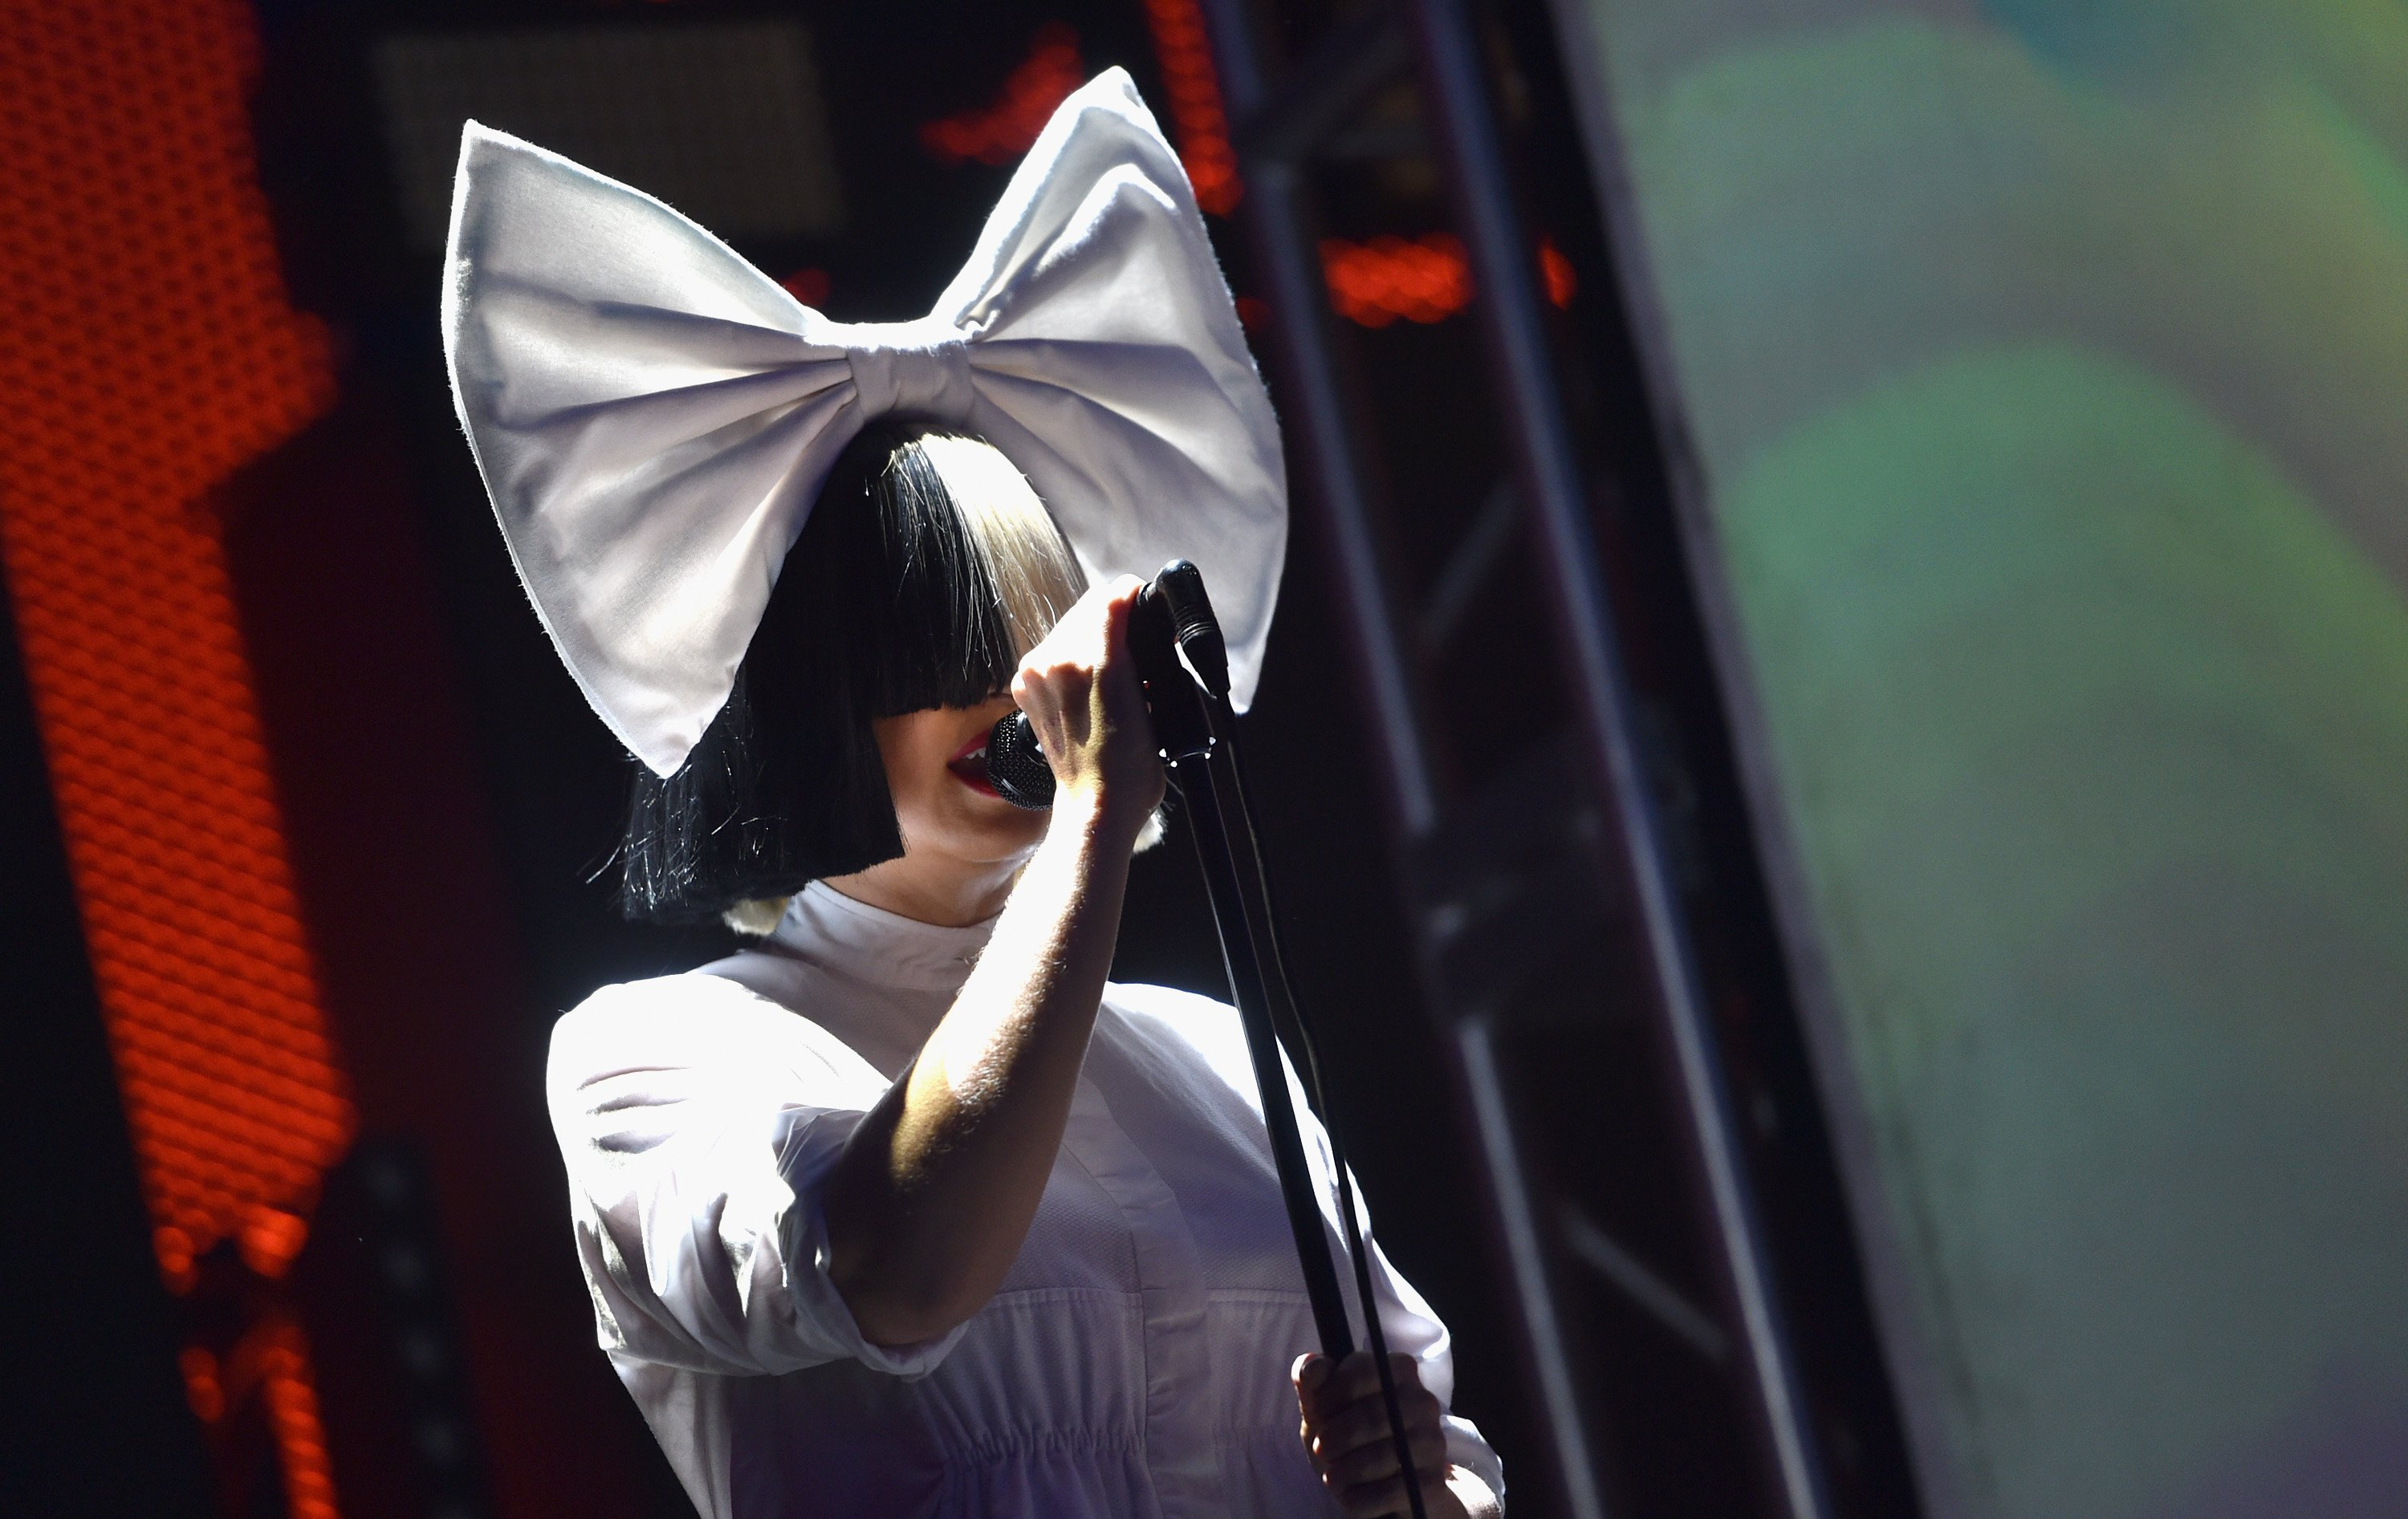 Sia performs onstage at the 2016 iHeartRadio Music Festival at T-Mobile Arena on September 23, 2016 | Photo: GettyImages